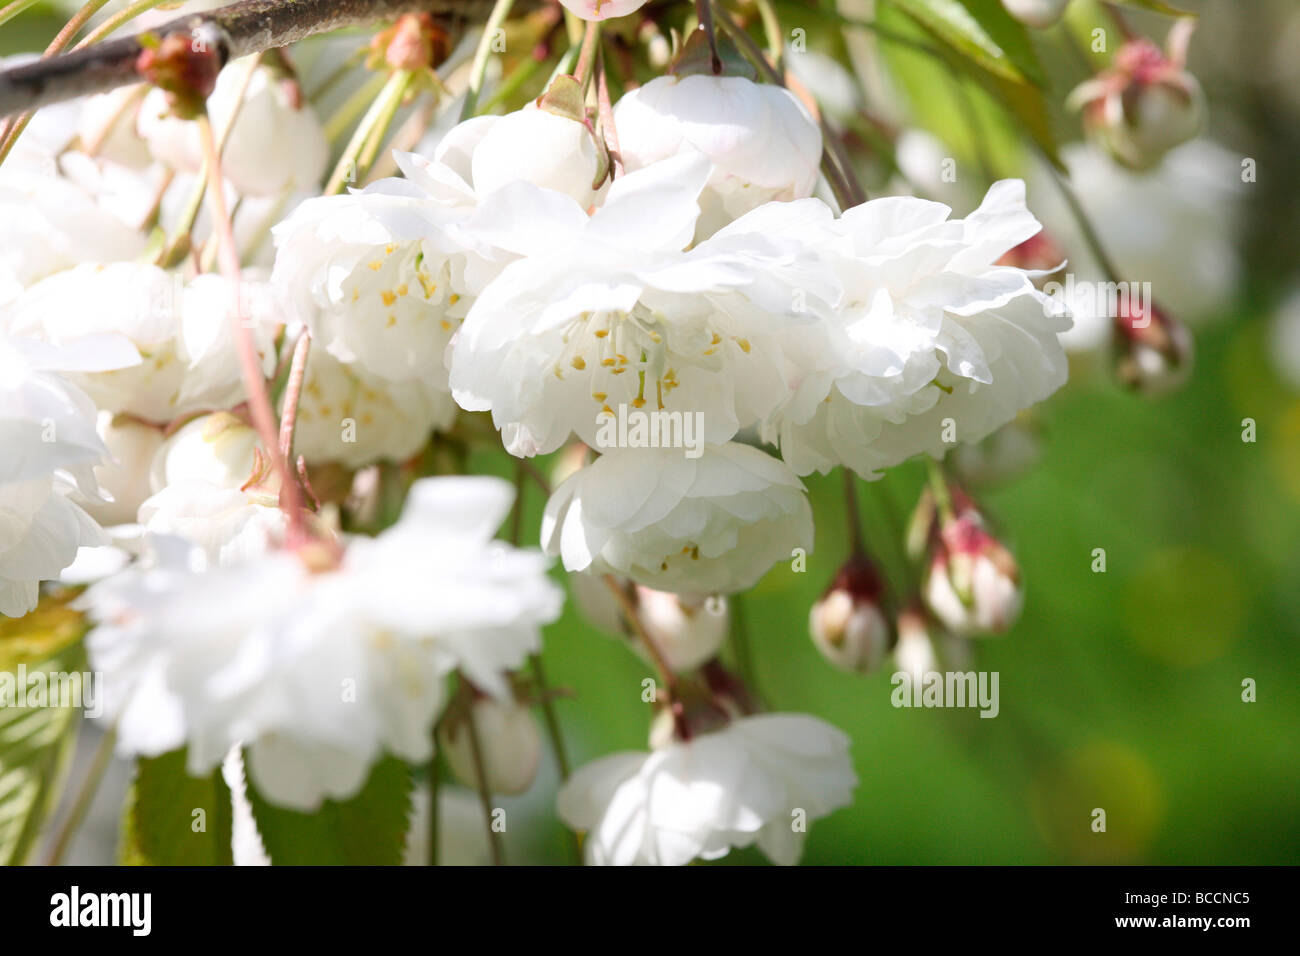 Prunus Avium Plena a beautiful blossoming cherry tree with drooping flowers fine art photography - Stock Image